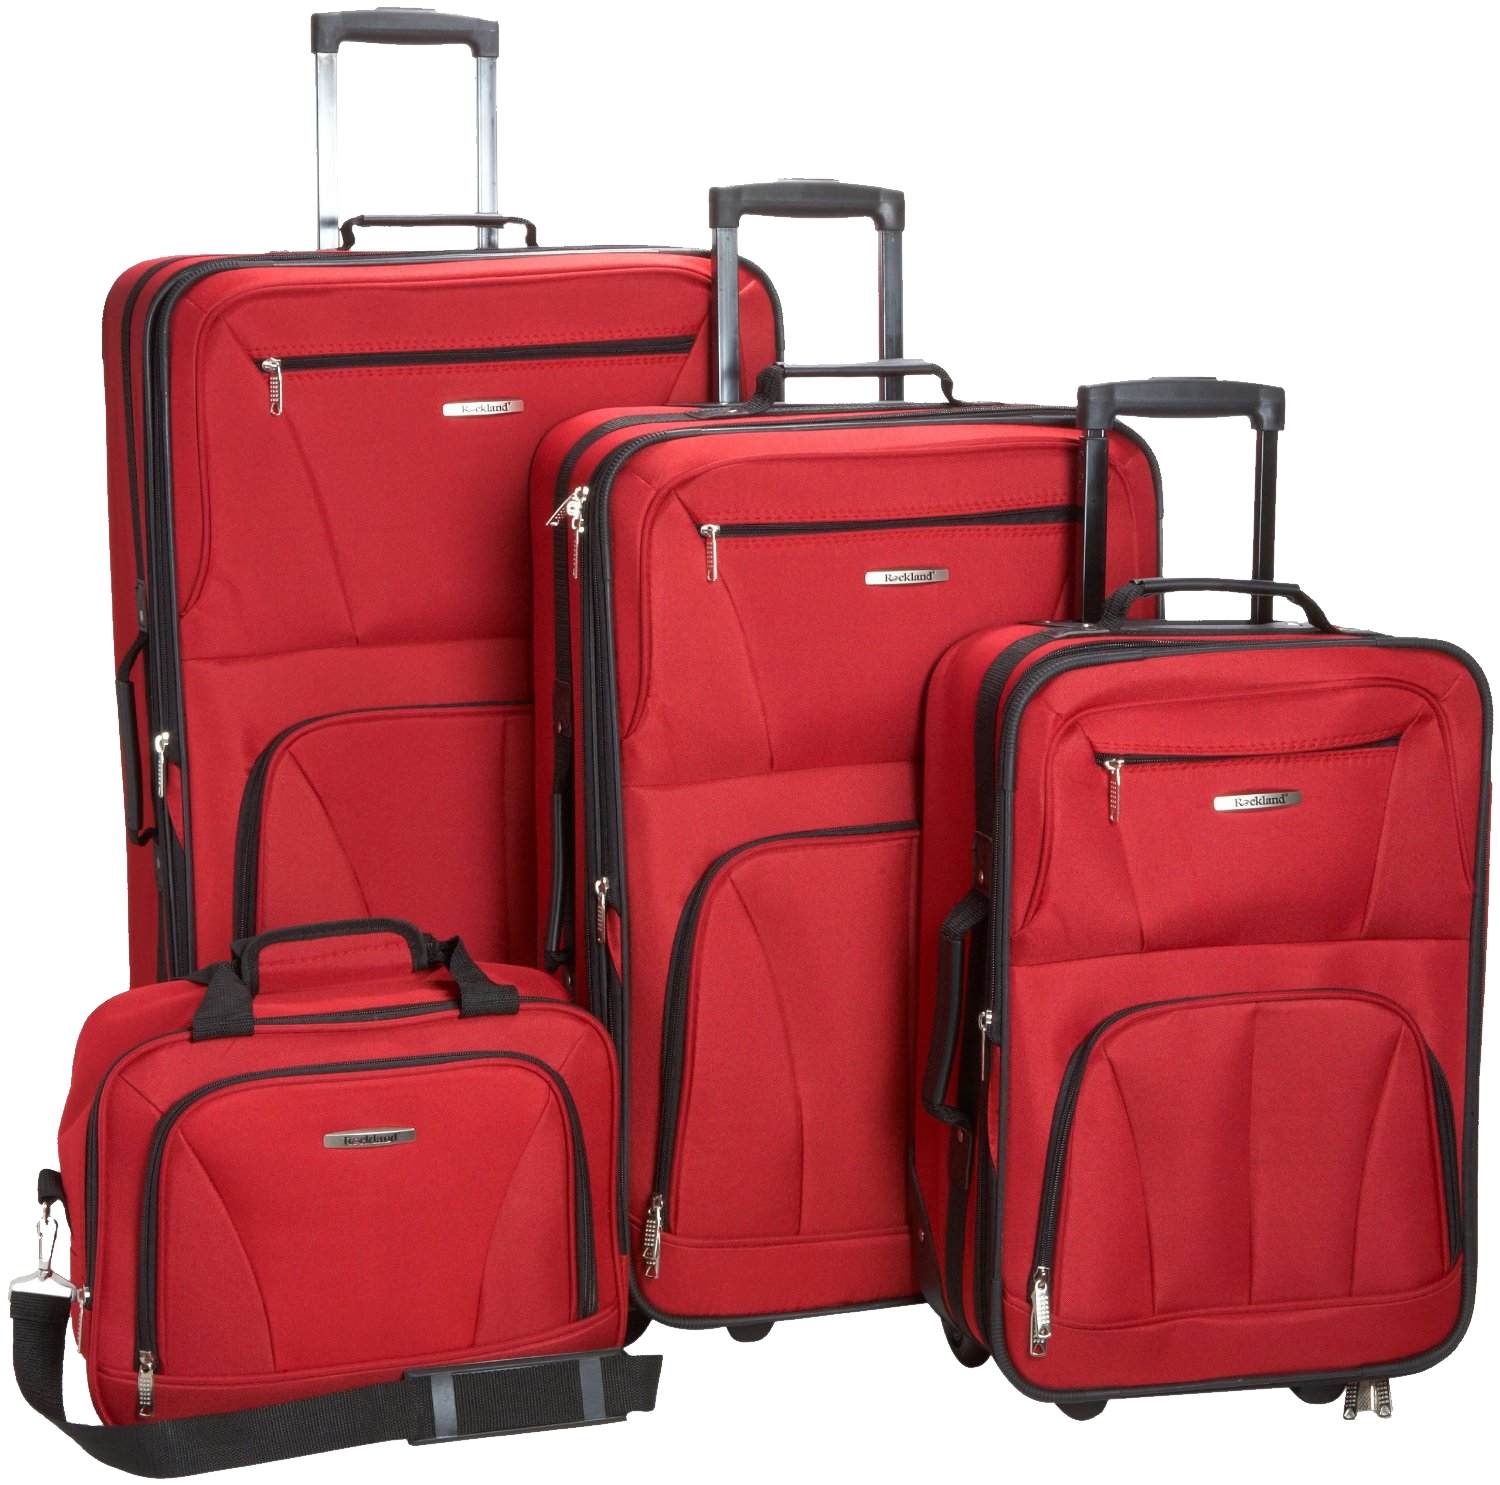 Four Suitcase Png Image Rockland Luggage Luggage Sets Overnight Travel Bag